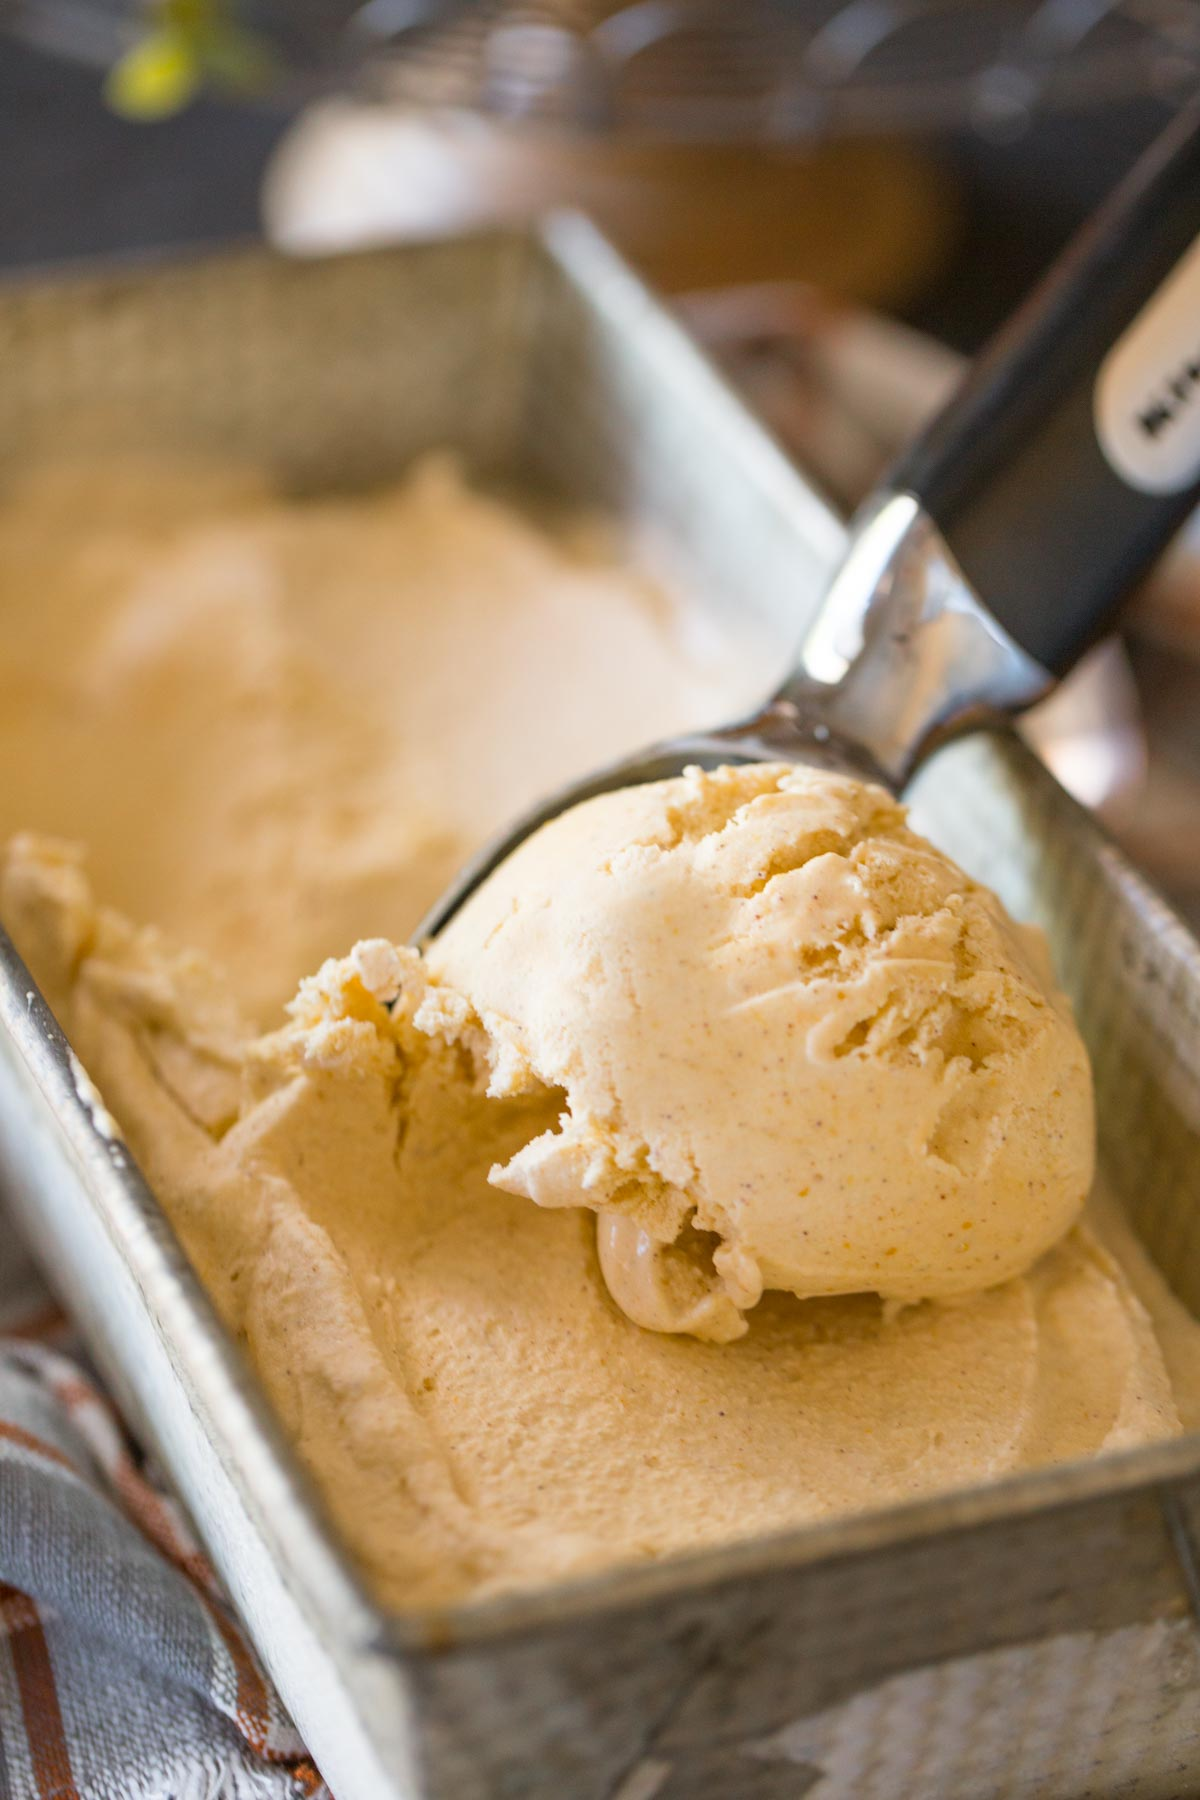 Homemade Pumpkin Pie Ice Cream being scooped from a loaf pan container.